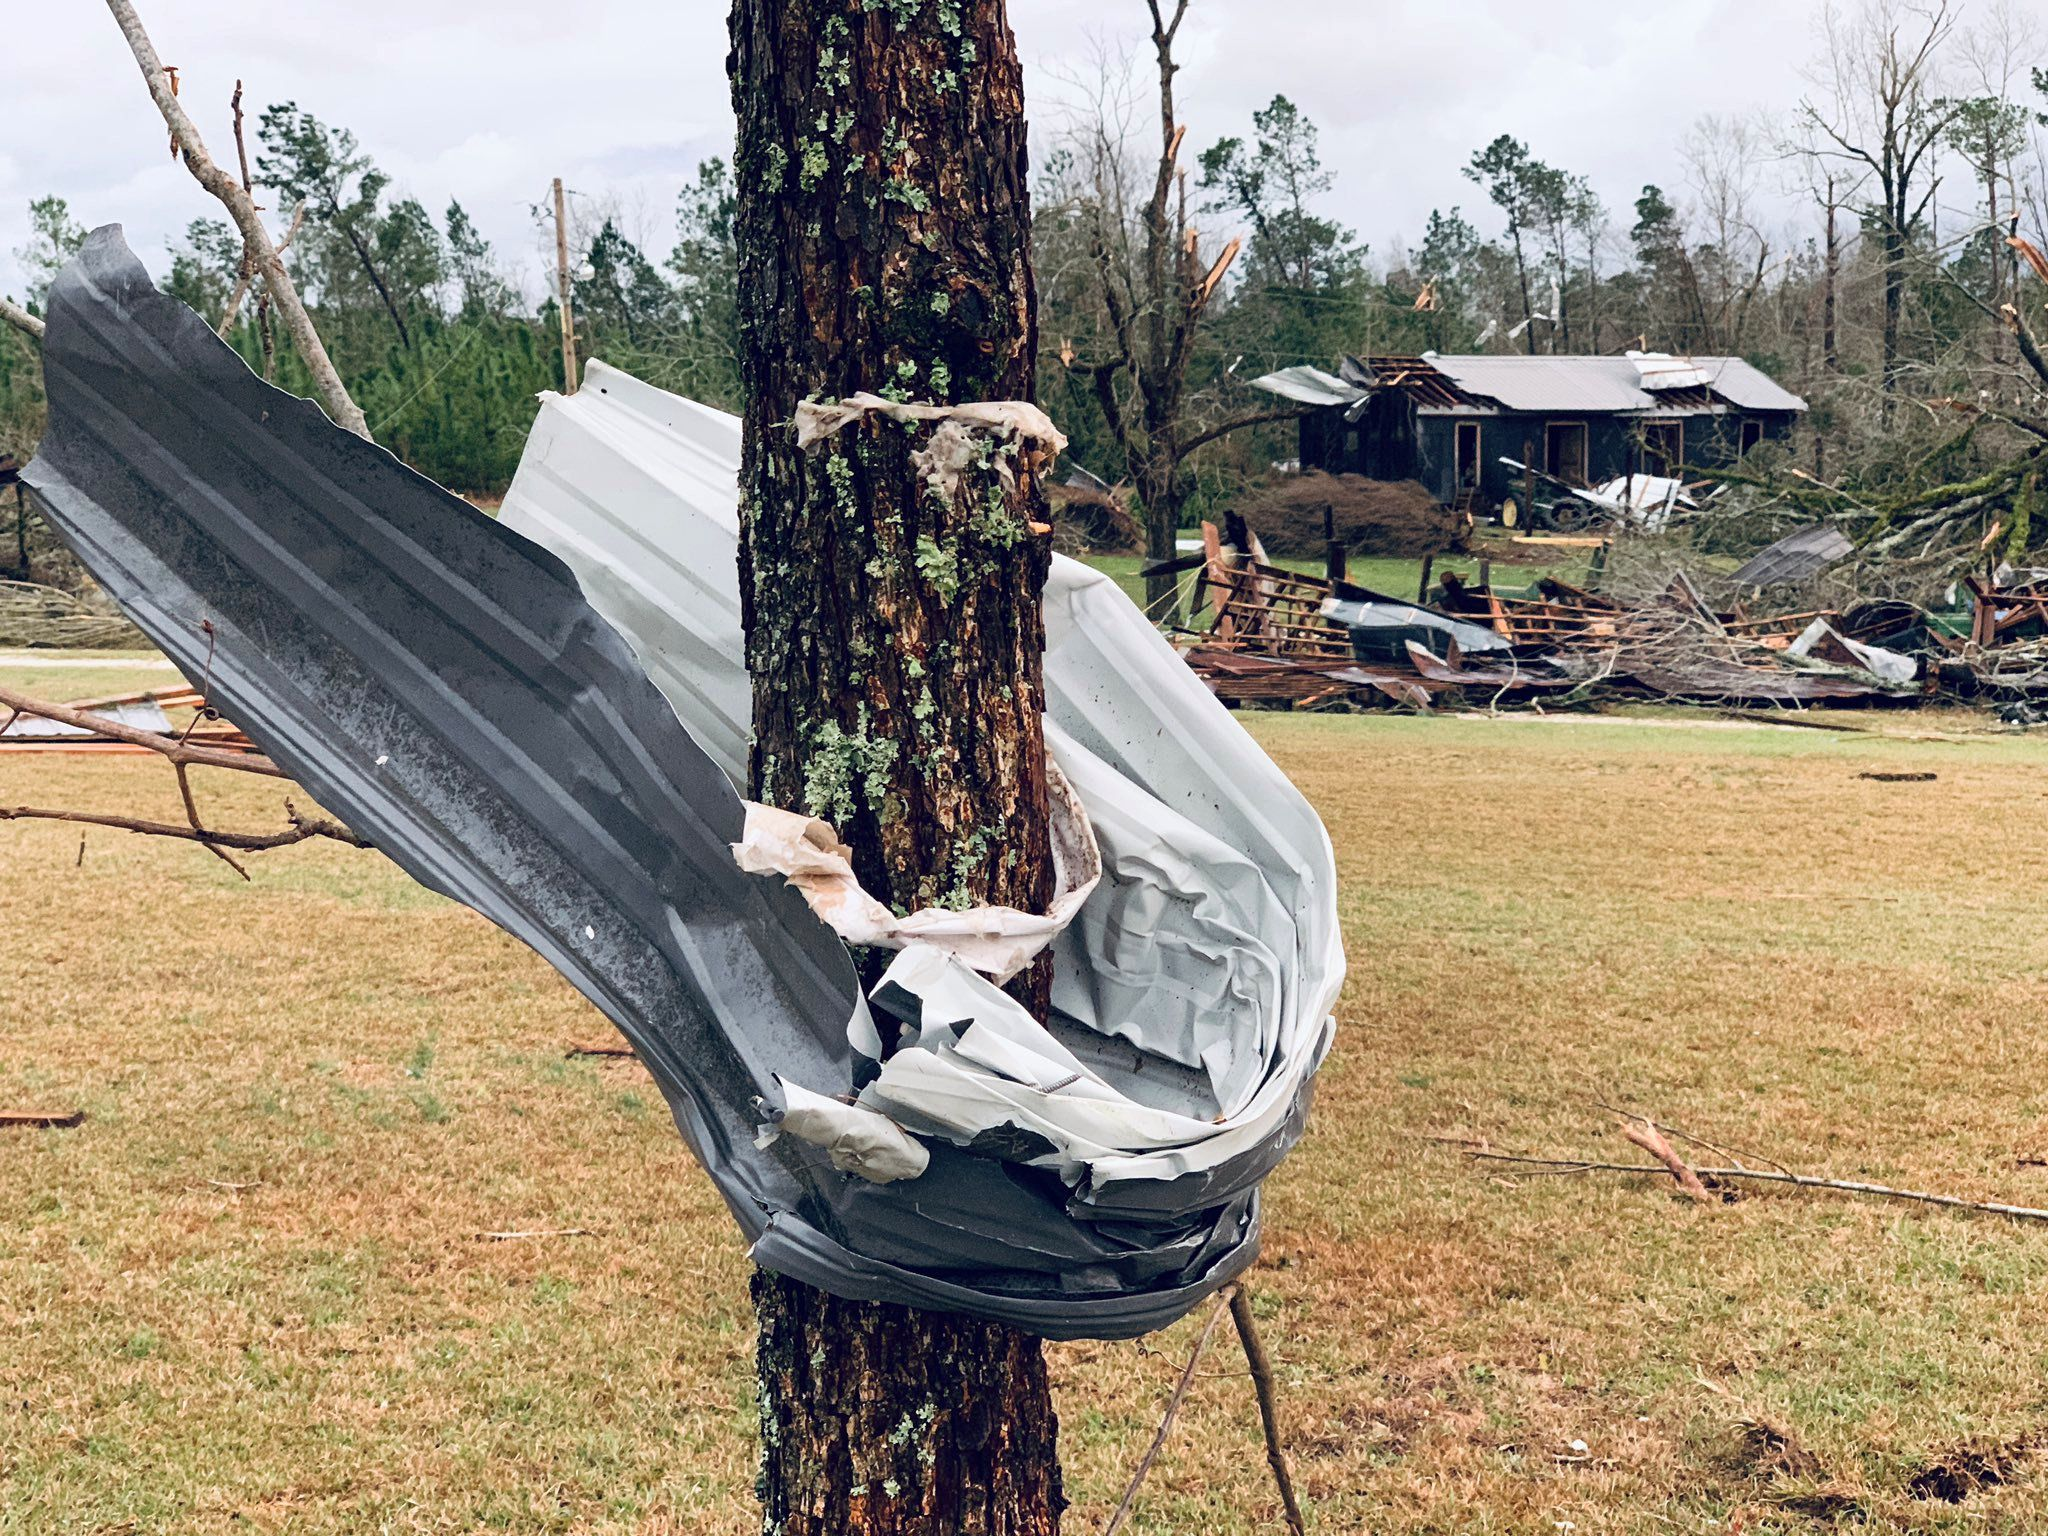 A piece of metal is seen wrapped around a tree following a tornado in Beauregard, Alabama, U.S. in this March 3, 2019 still image obtained from social media video on March 4, 2019.